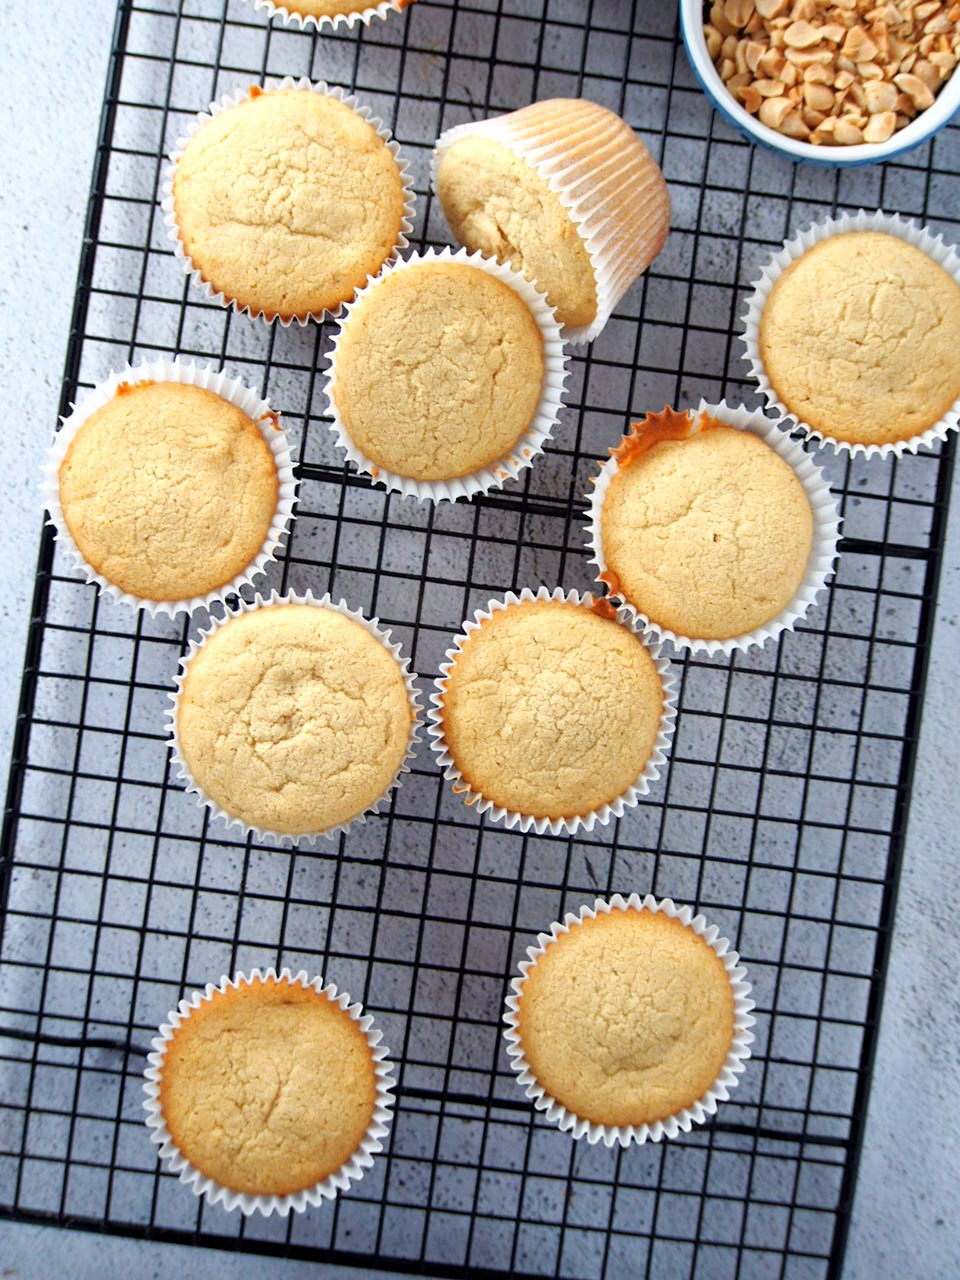 Peanut butter cupcakes ready for glazing and toppings.